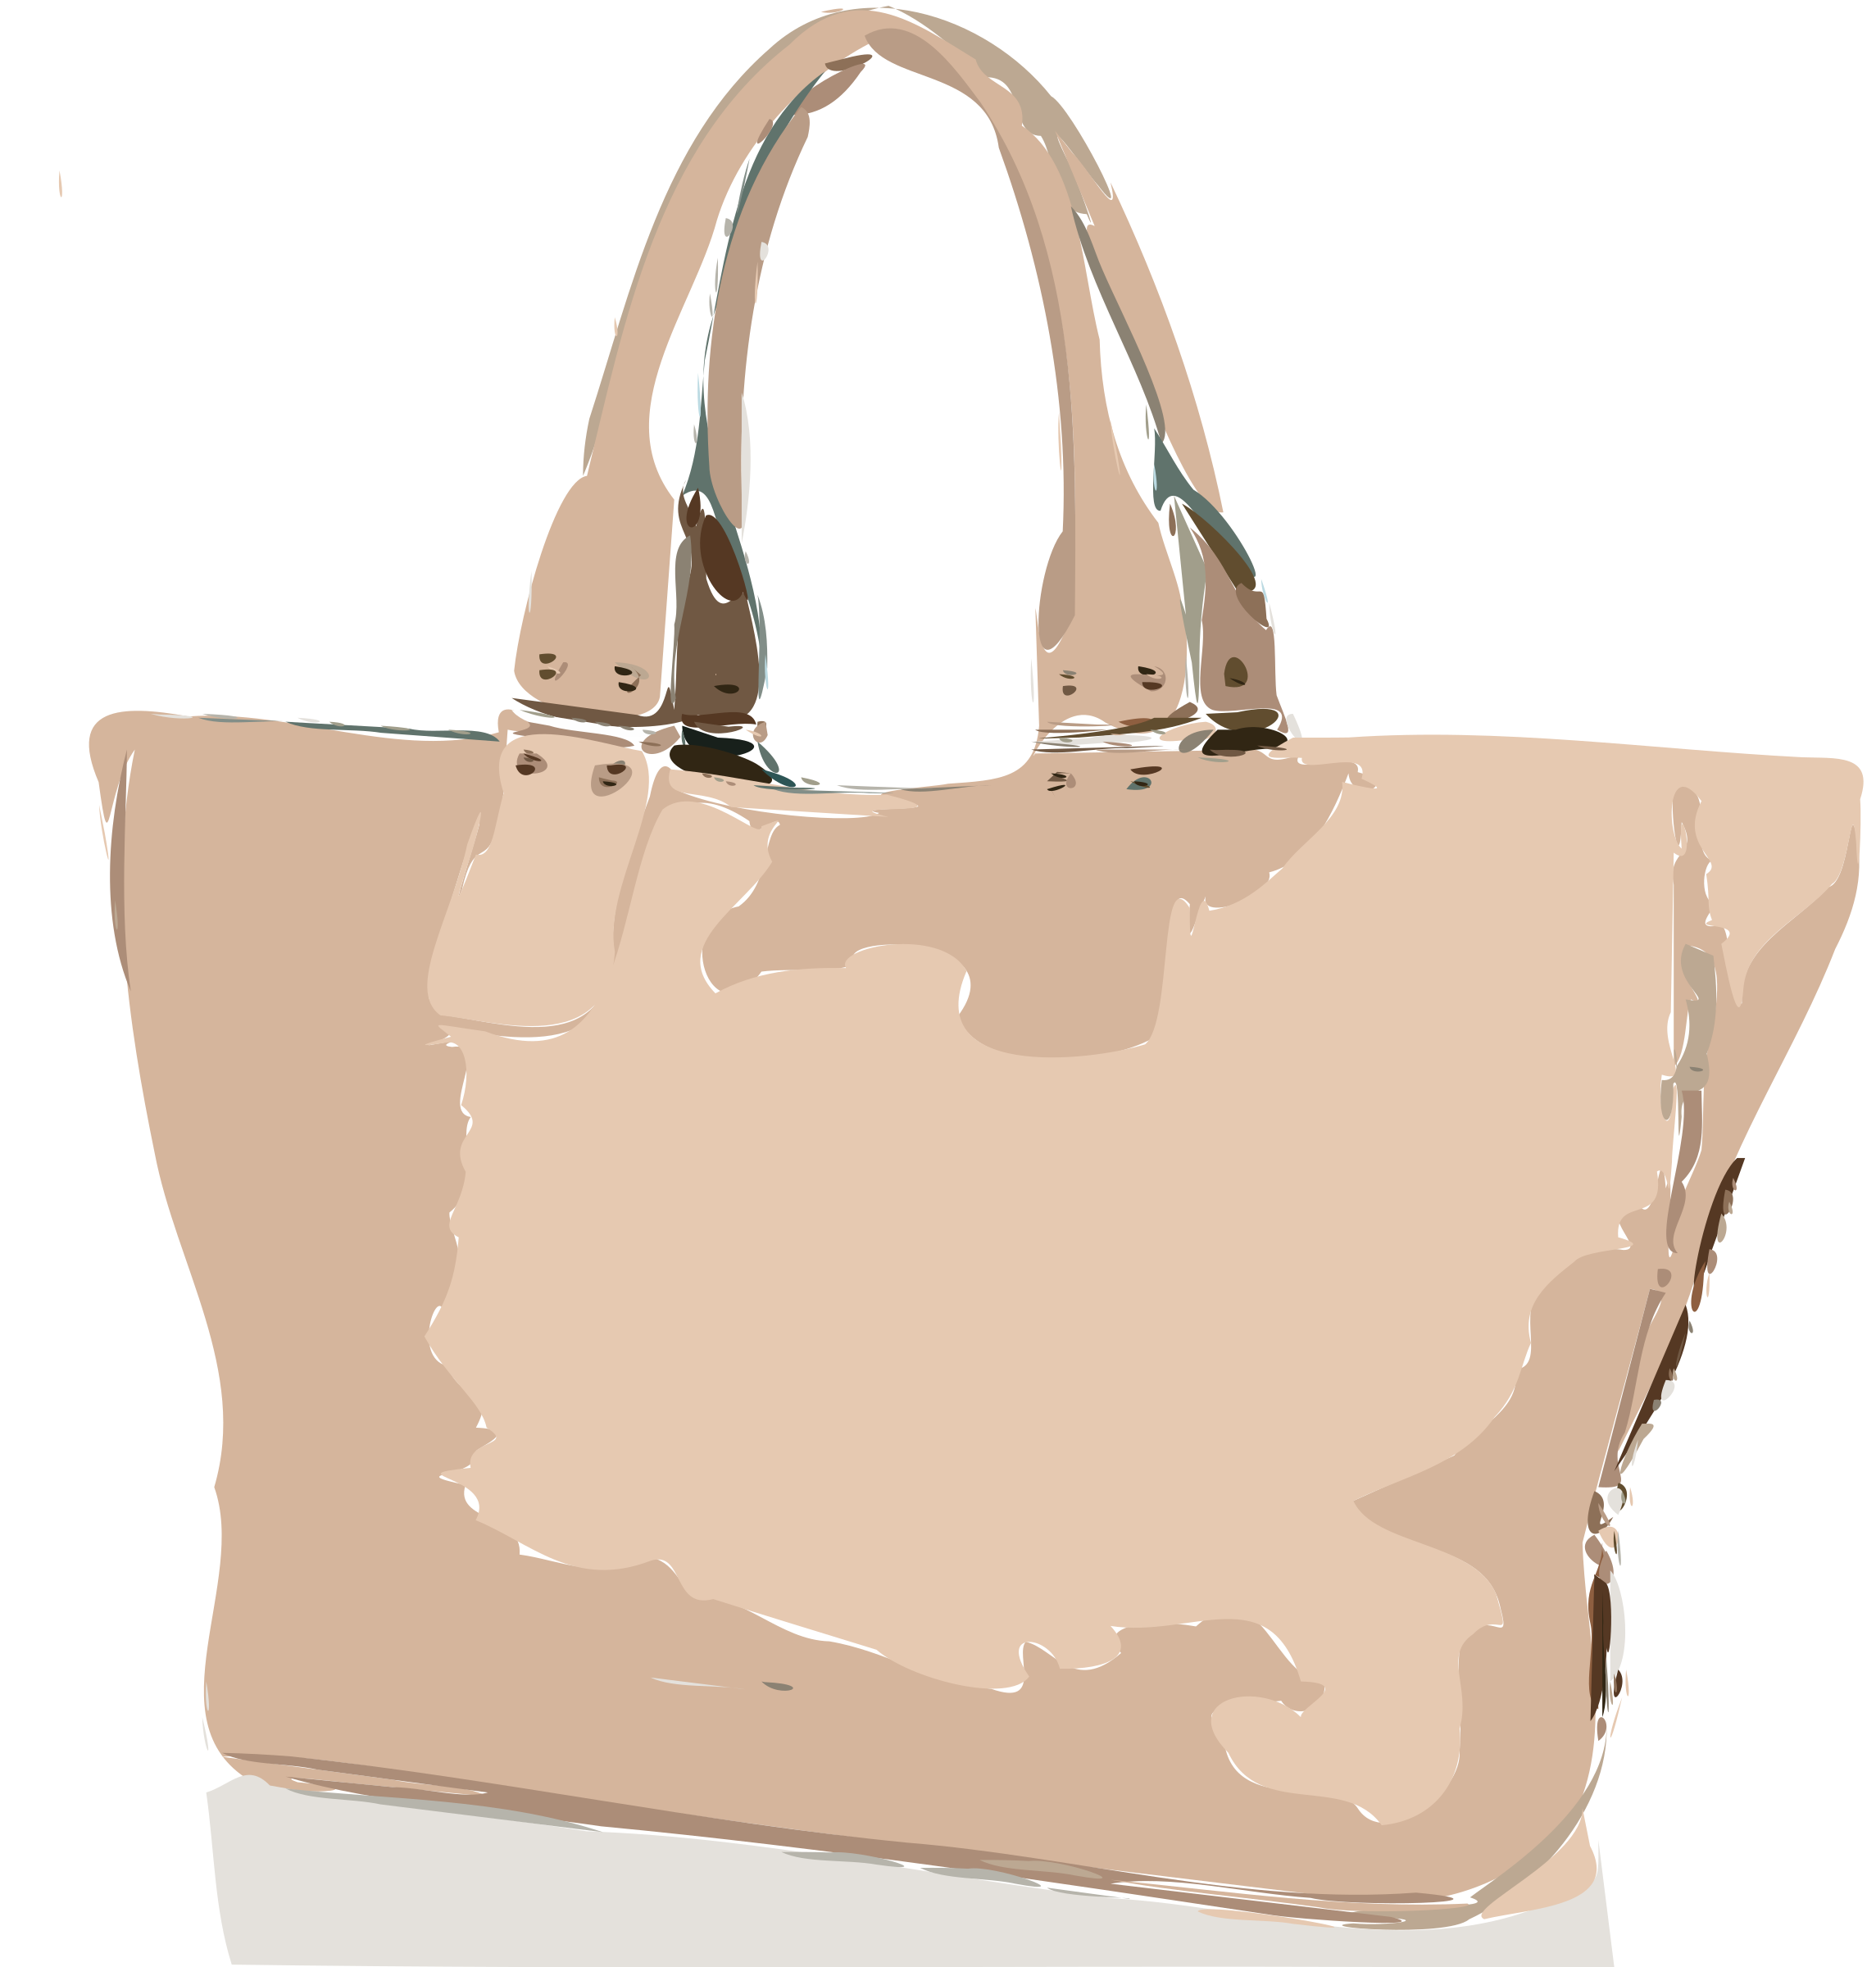 Tan Handbag No Logo by rejon